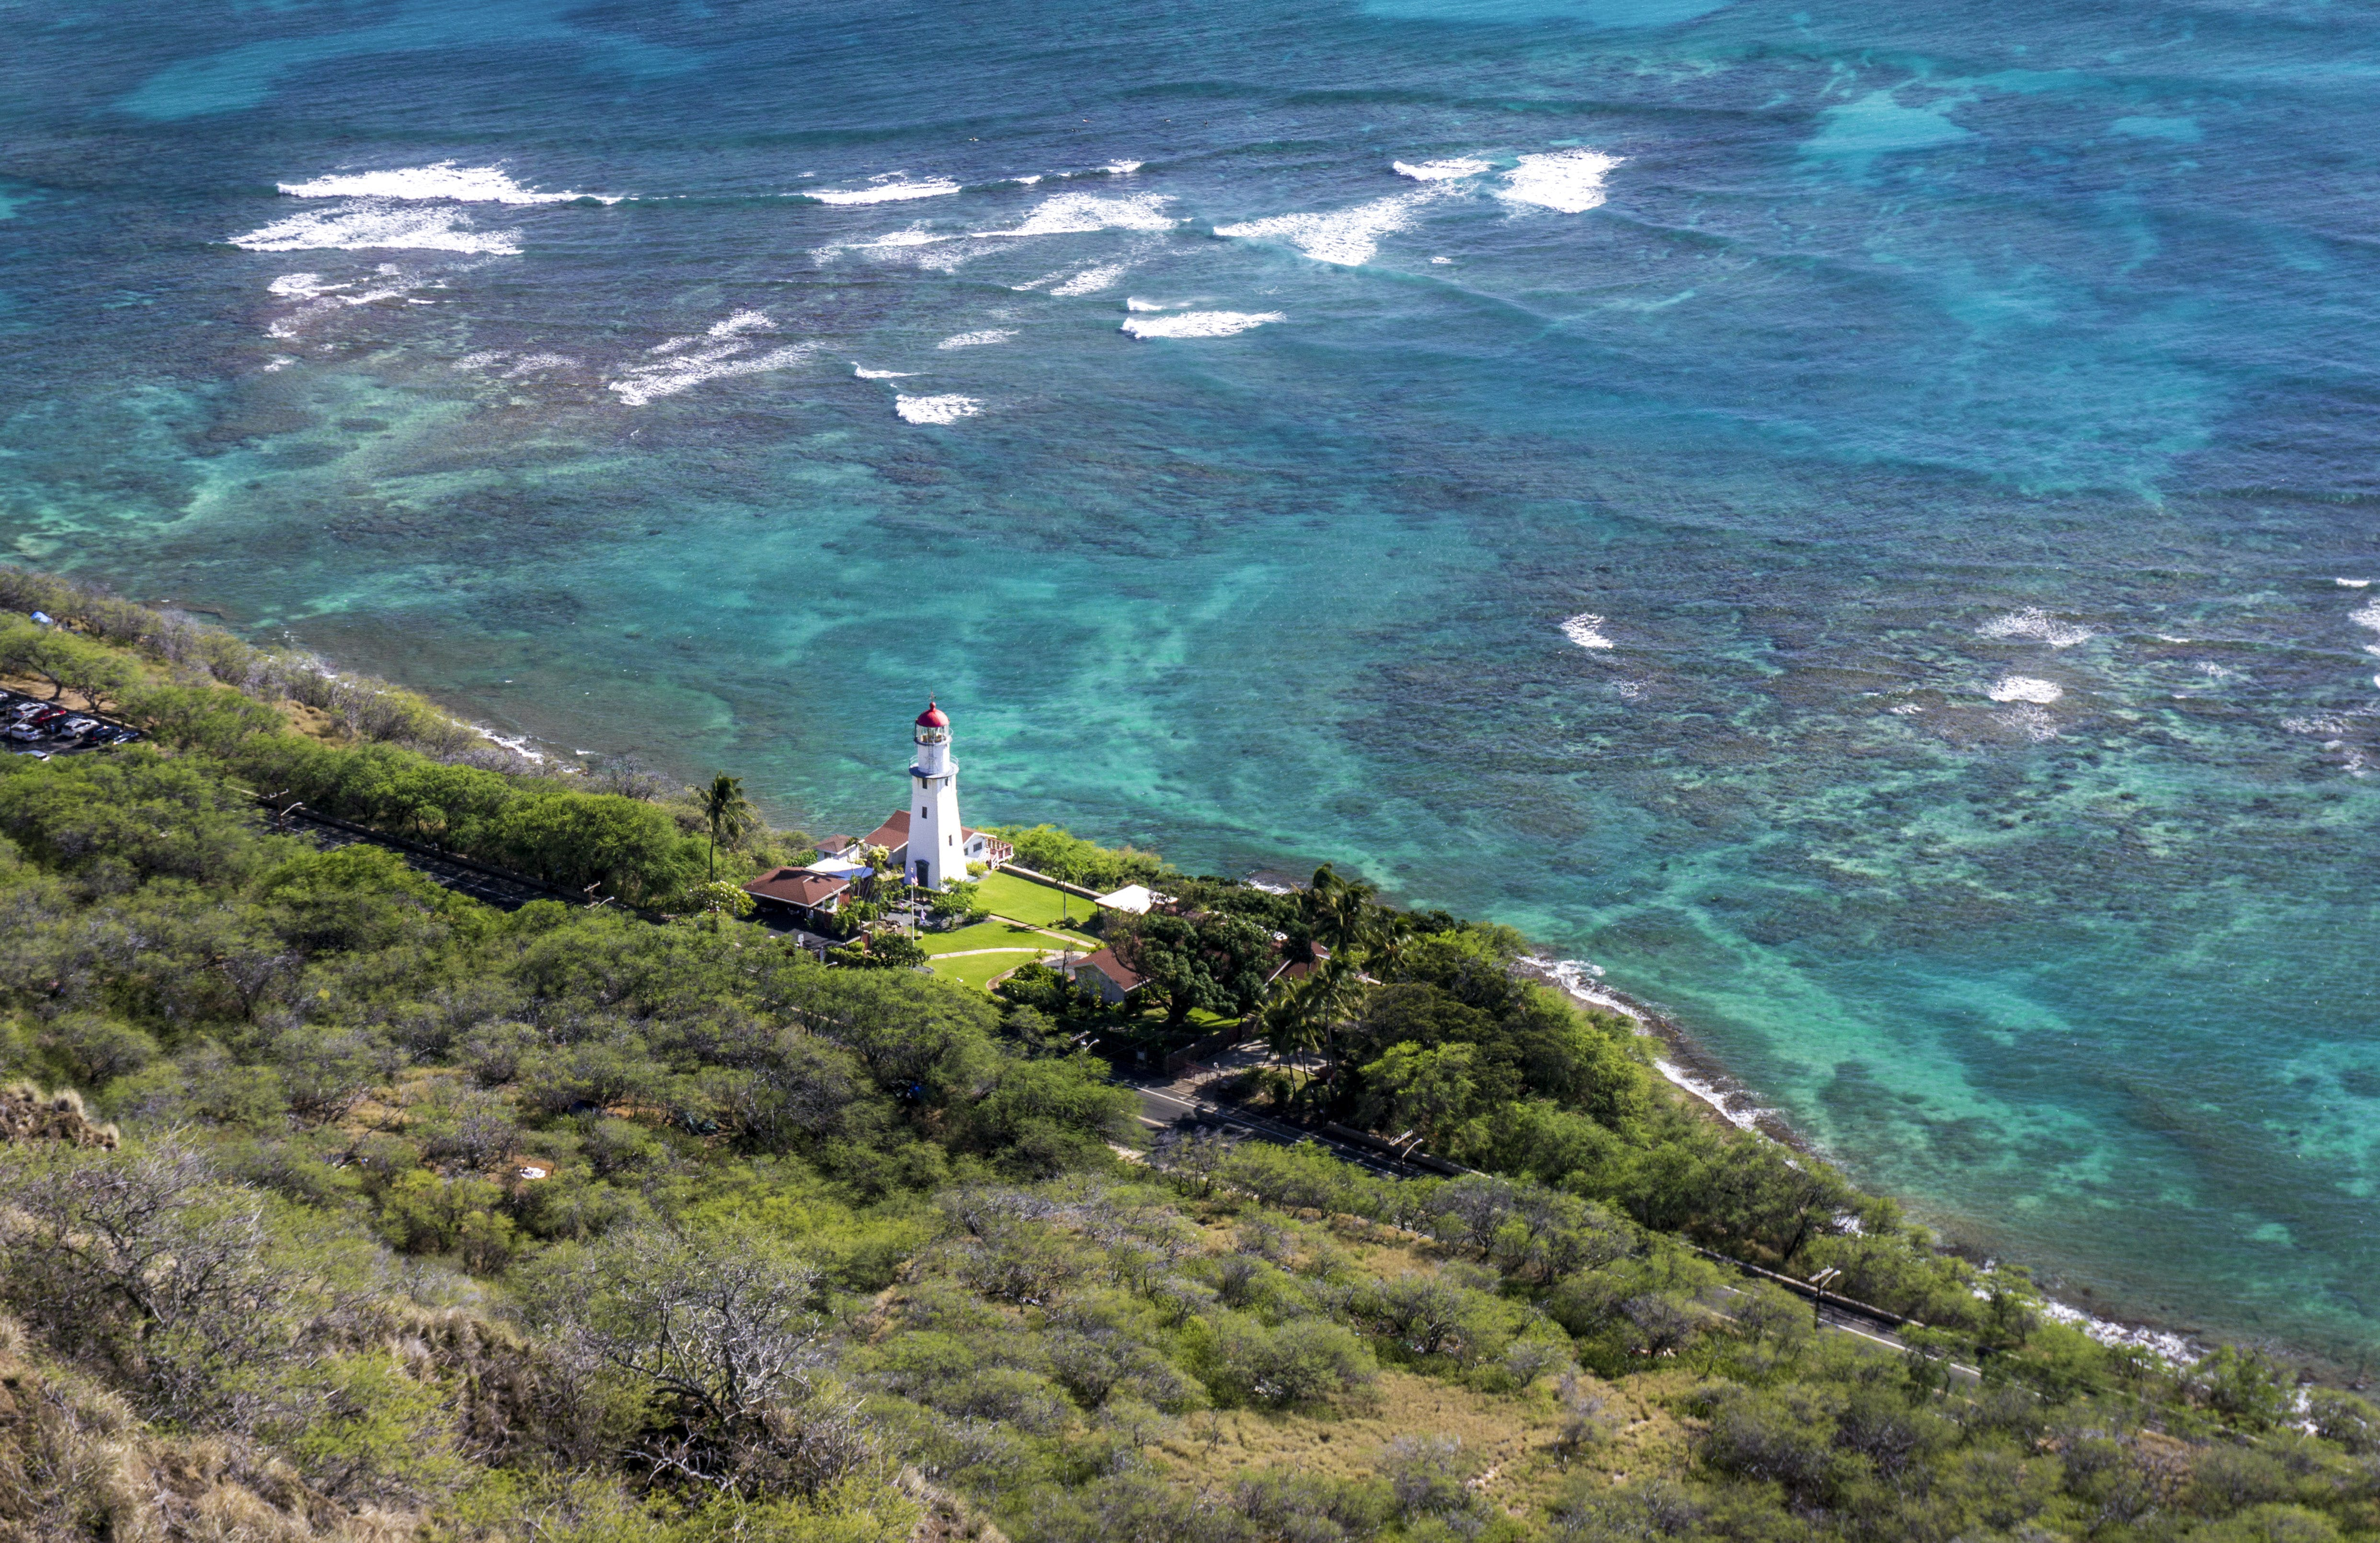 Aerial Photo of White Lighthouse Near Beach and Trees